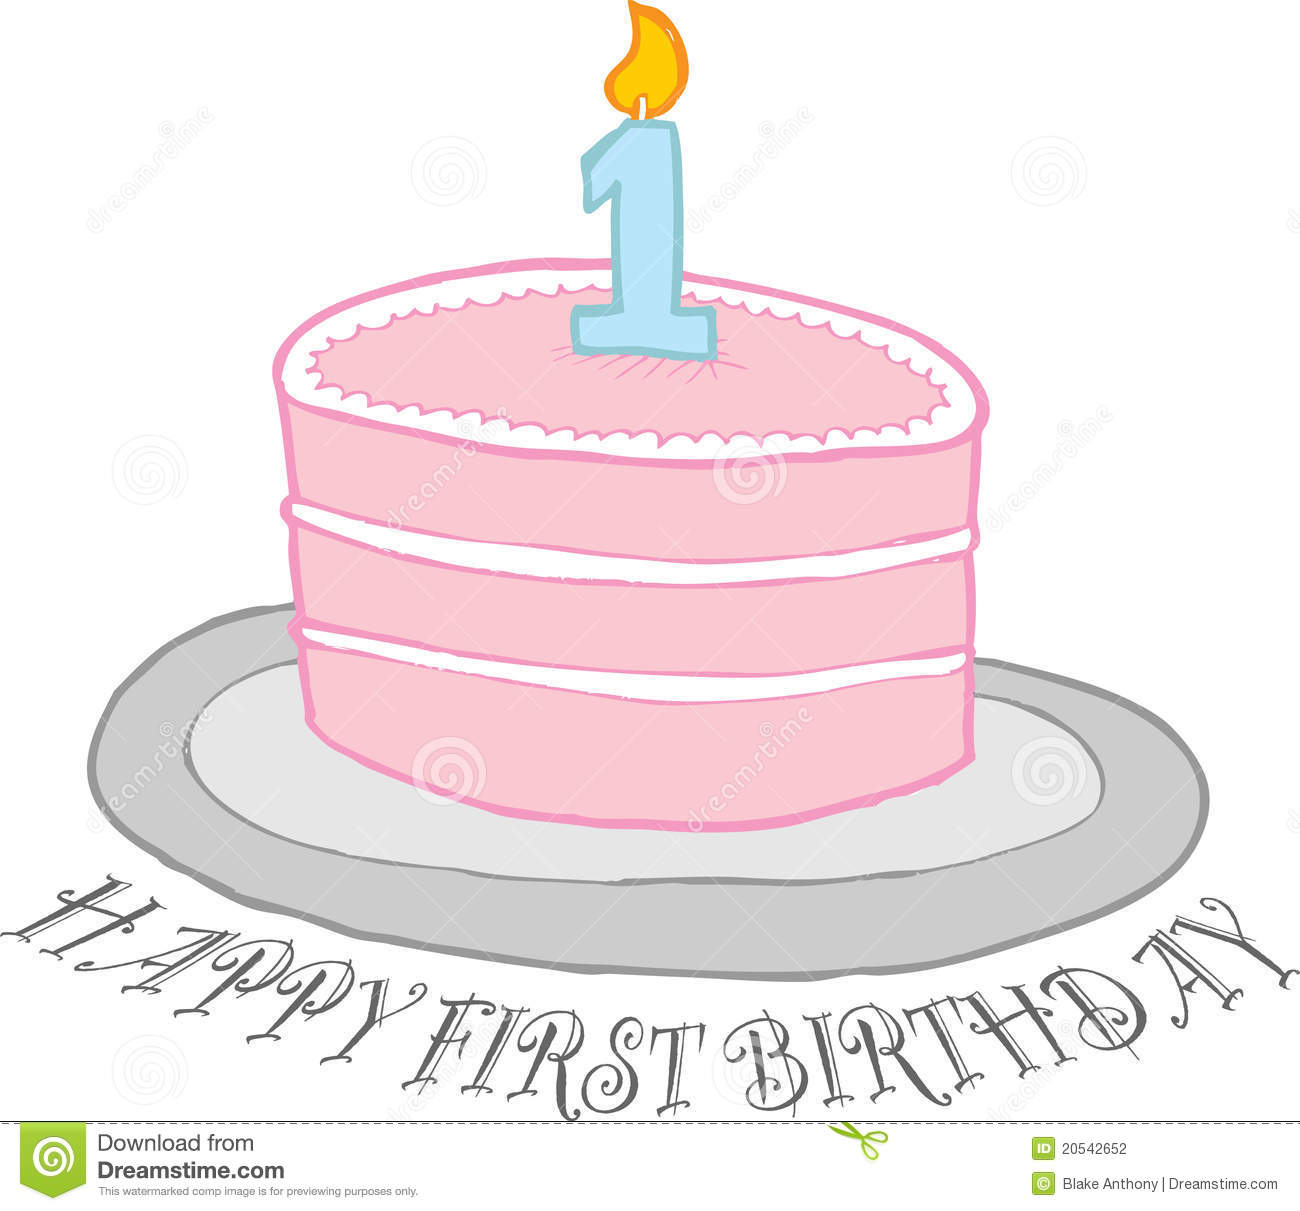 first birthday cake clipart ; happy-first-birthday-cake-20542652